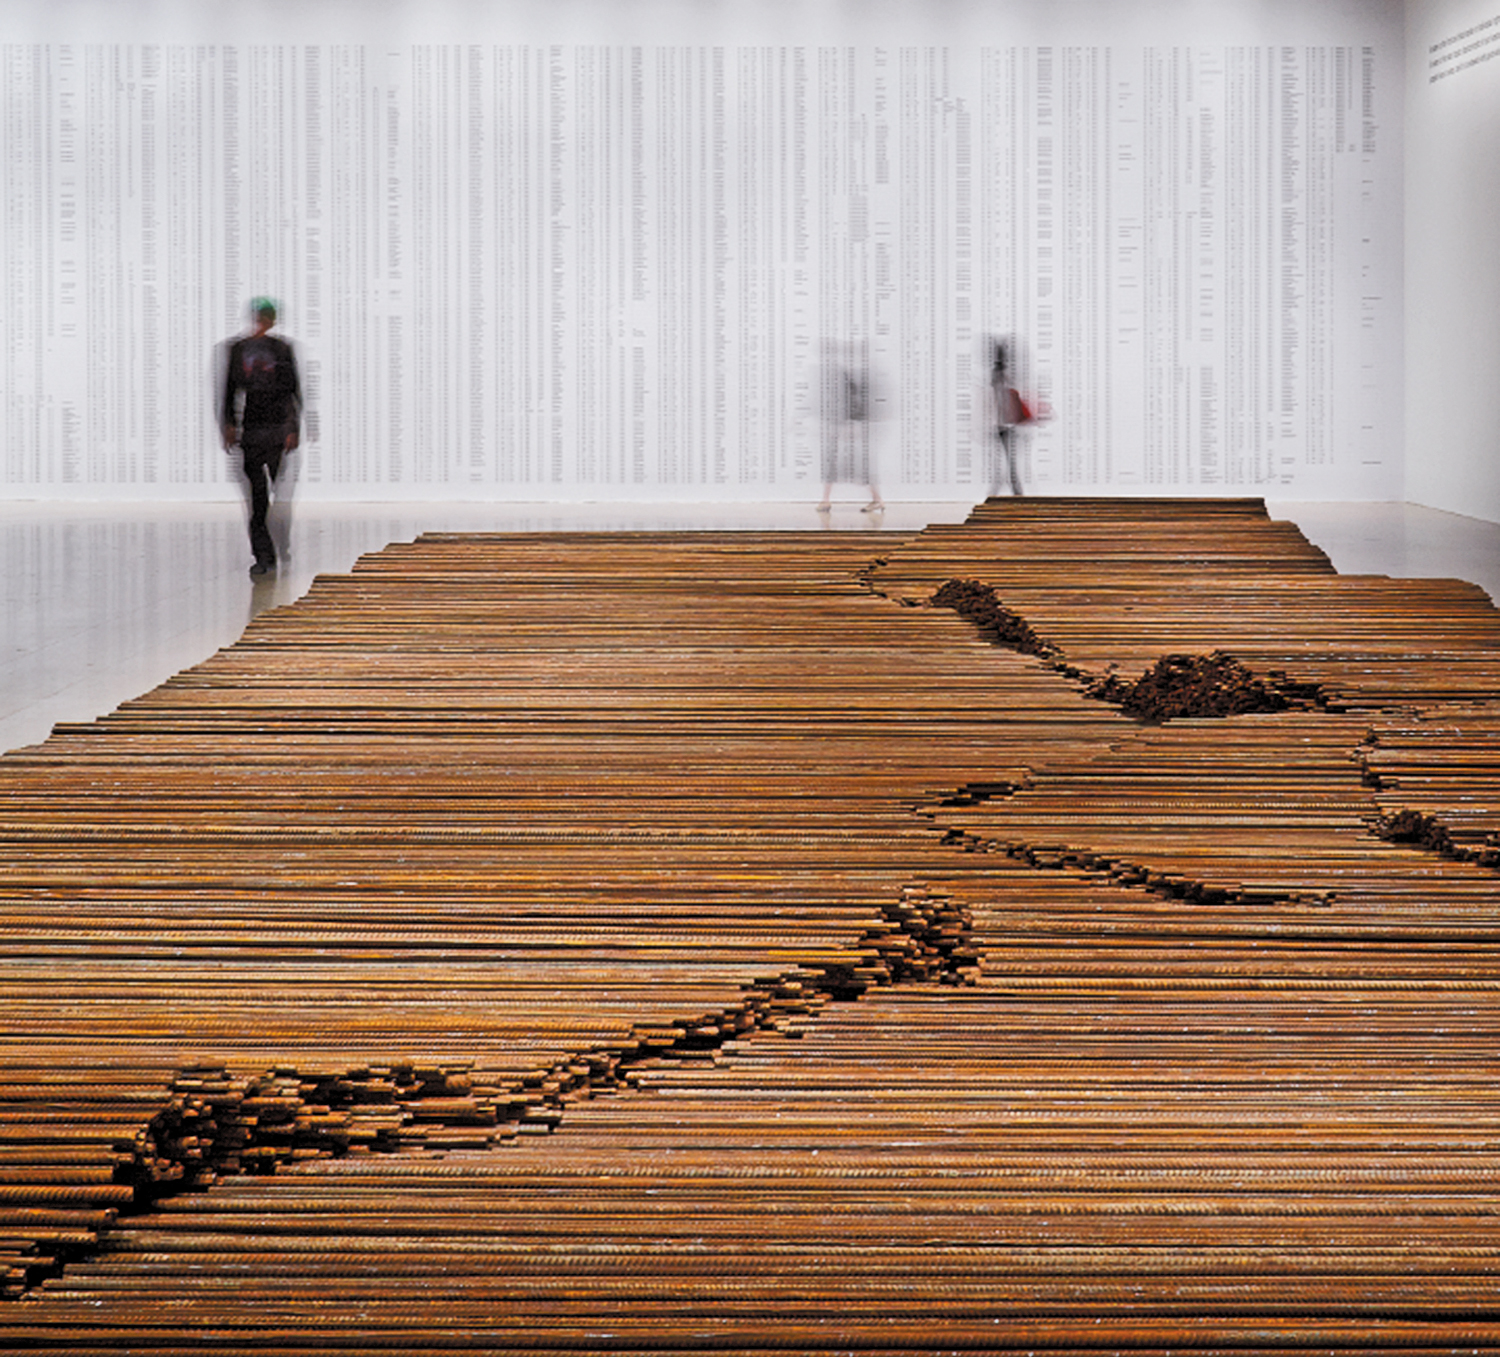 Top-to-bottom-Remembrance-2010-Wenchuan-Steel-Rebar-2008–12